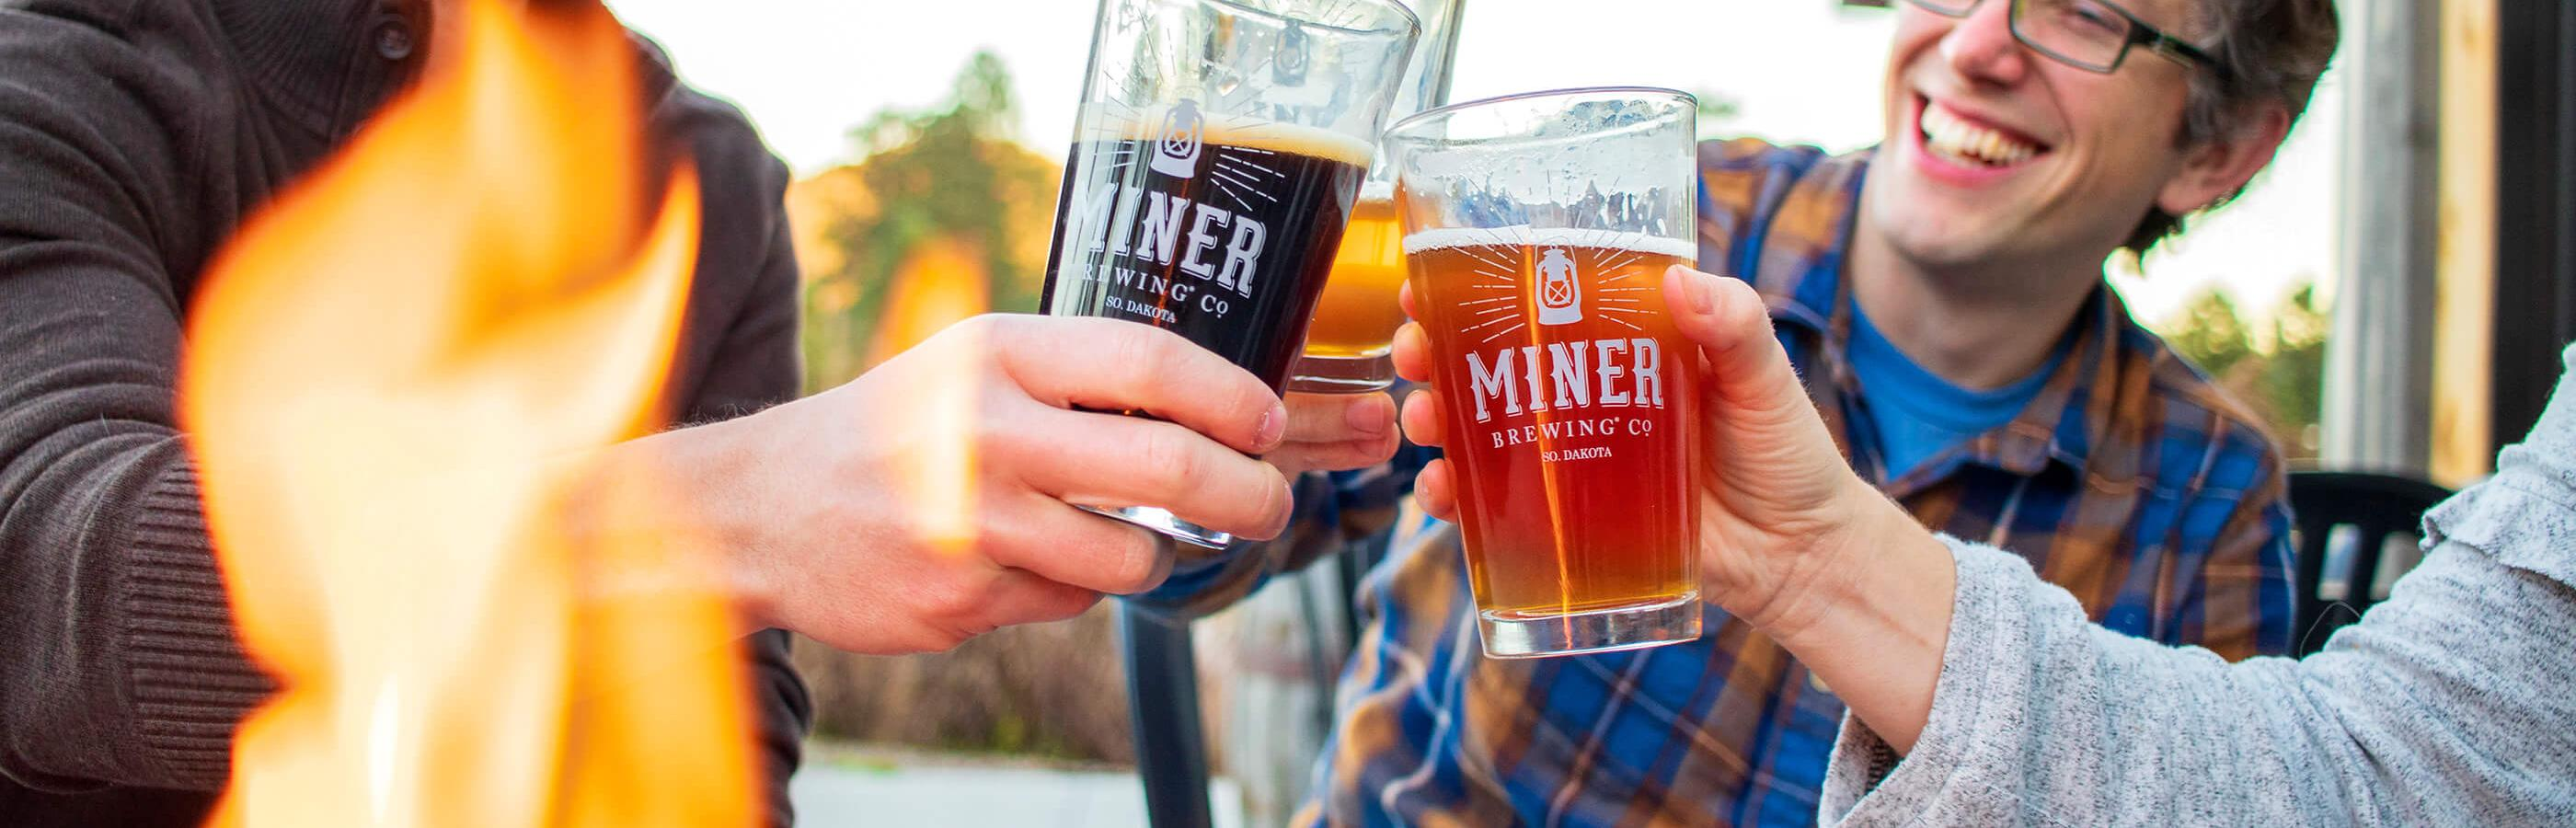 Cheers-ing At Miner Brewing Company